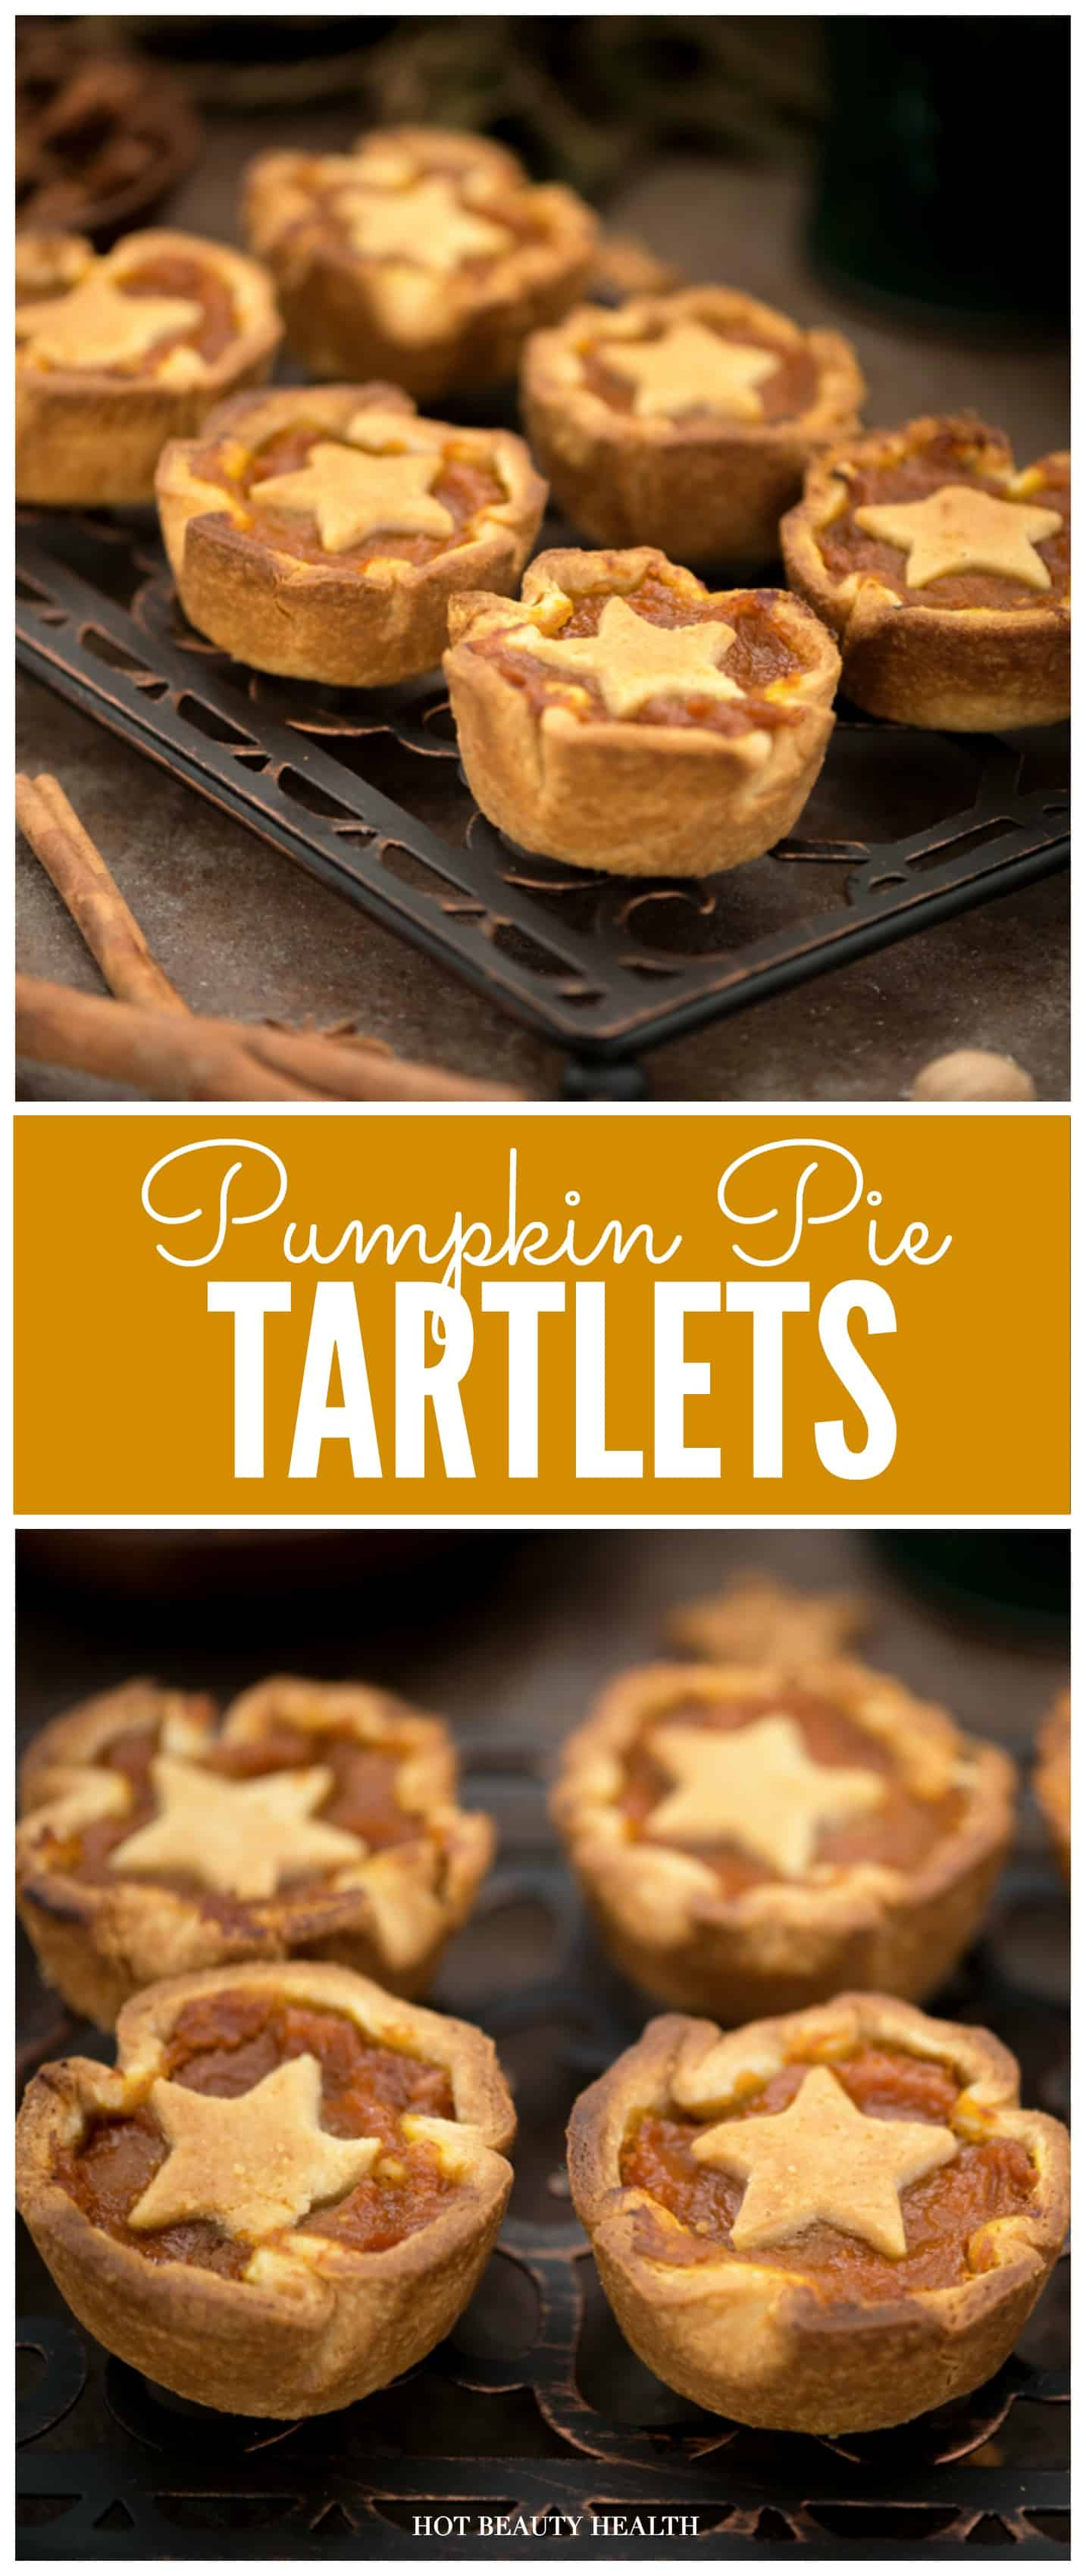 These pumpkin pie tartlets are the perfect dessert to enjoy in the fall especially during Thanksgiving and Christmas. It's one of my favorite holiday desserts. Click over to learn how to make this easy recipe!